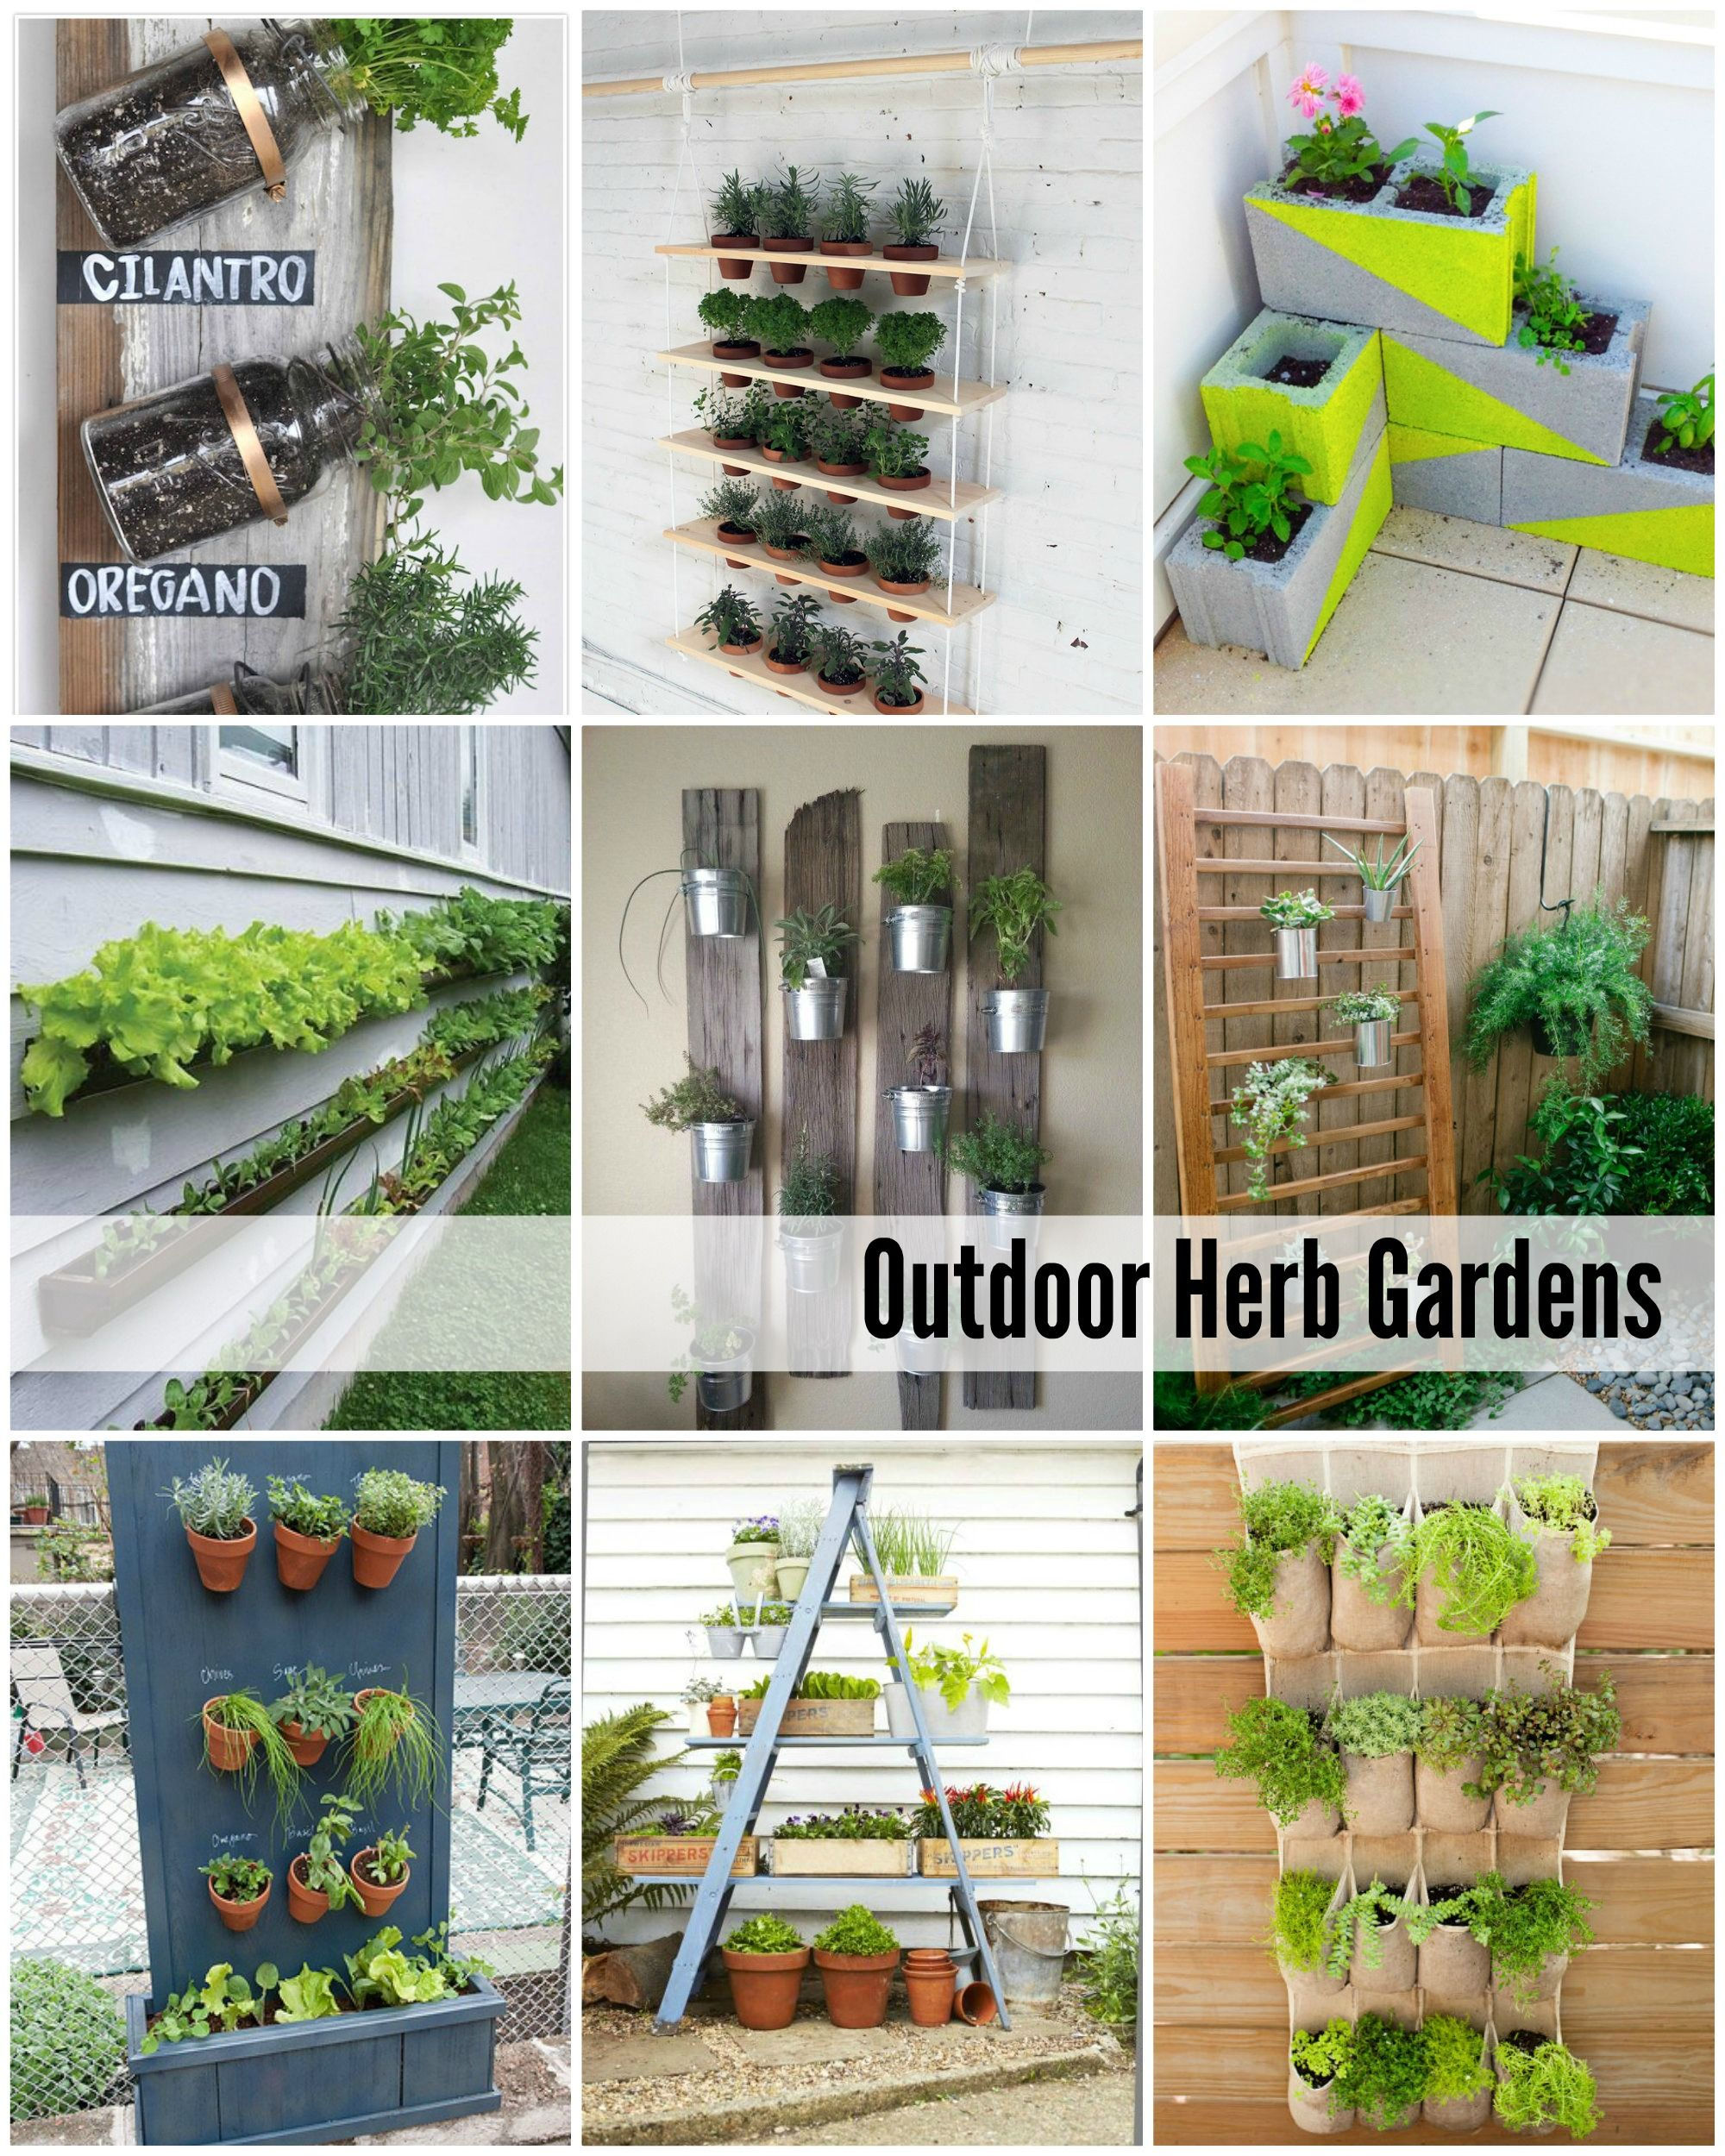 Outdoor Herb Garden Ideas  Outdoor herb garden, Herb garden